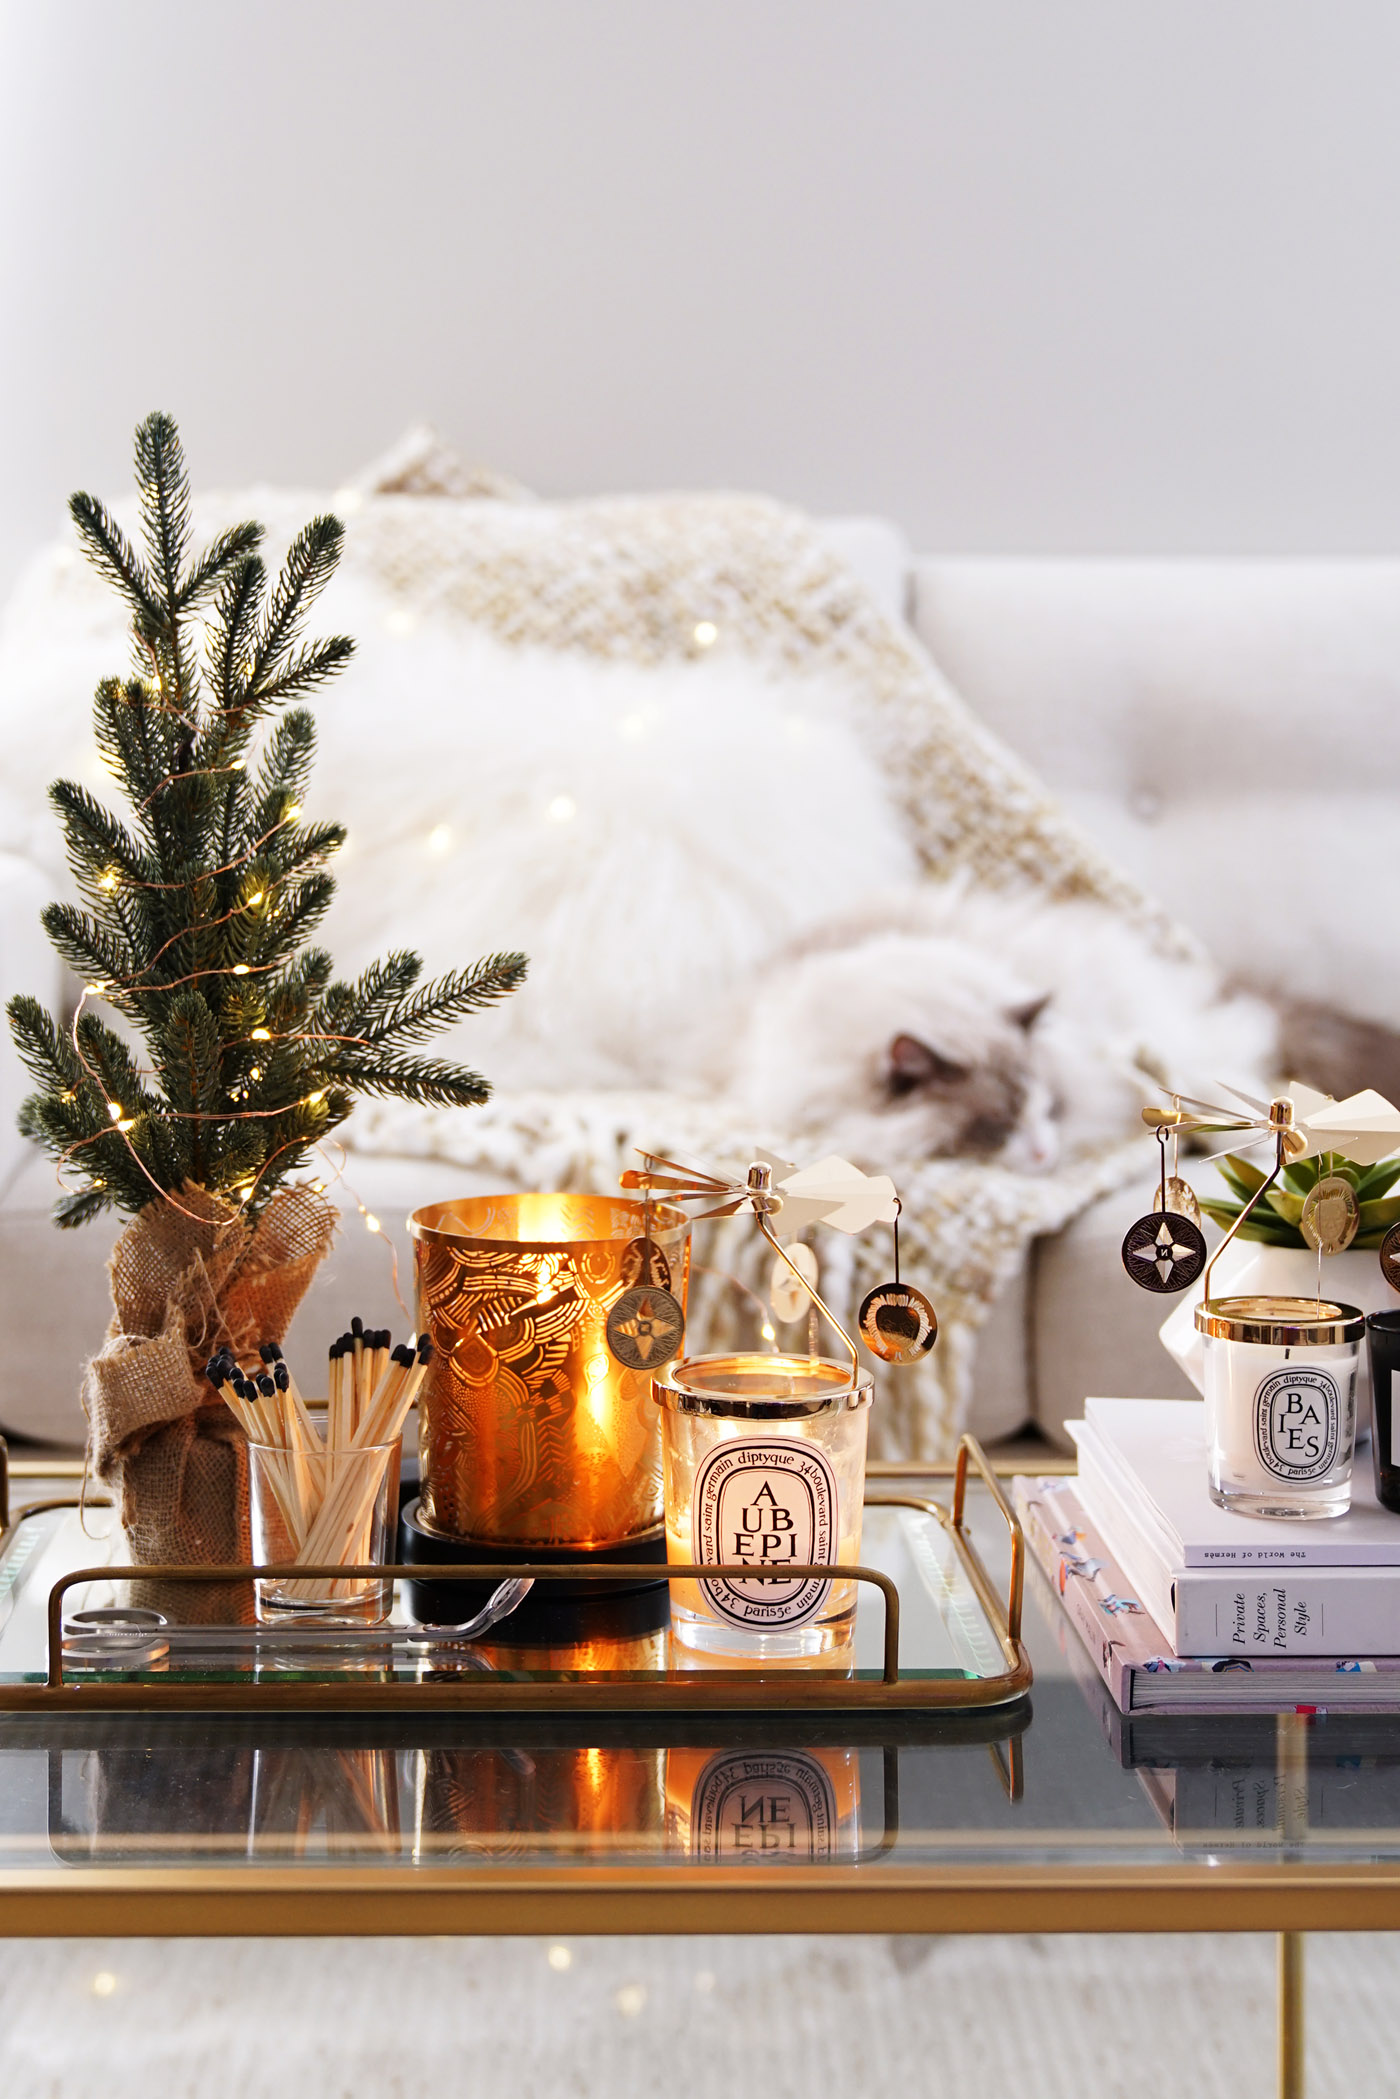 Holiday Christmas Diptyque Candles | The Beauty Look Book